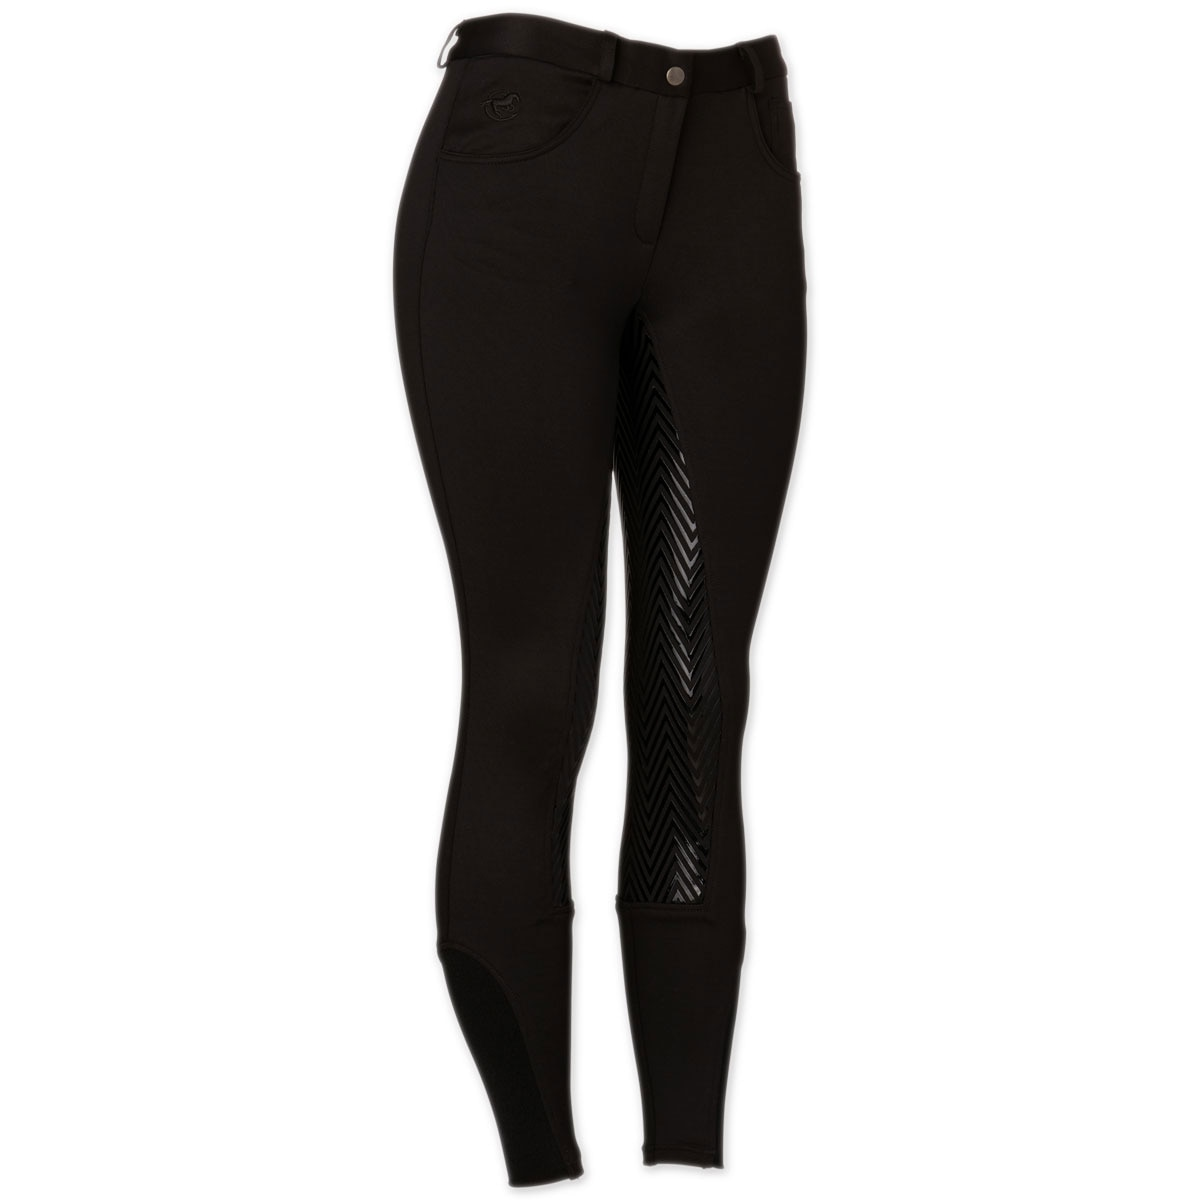 Piper Knit Breeches by SmartPak- Fleece Lined Full Seat